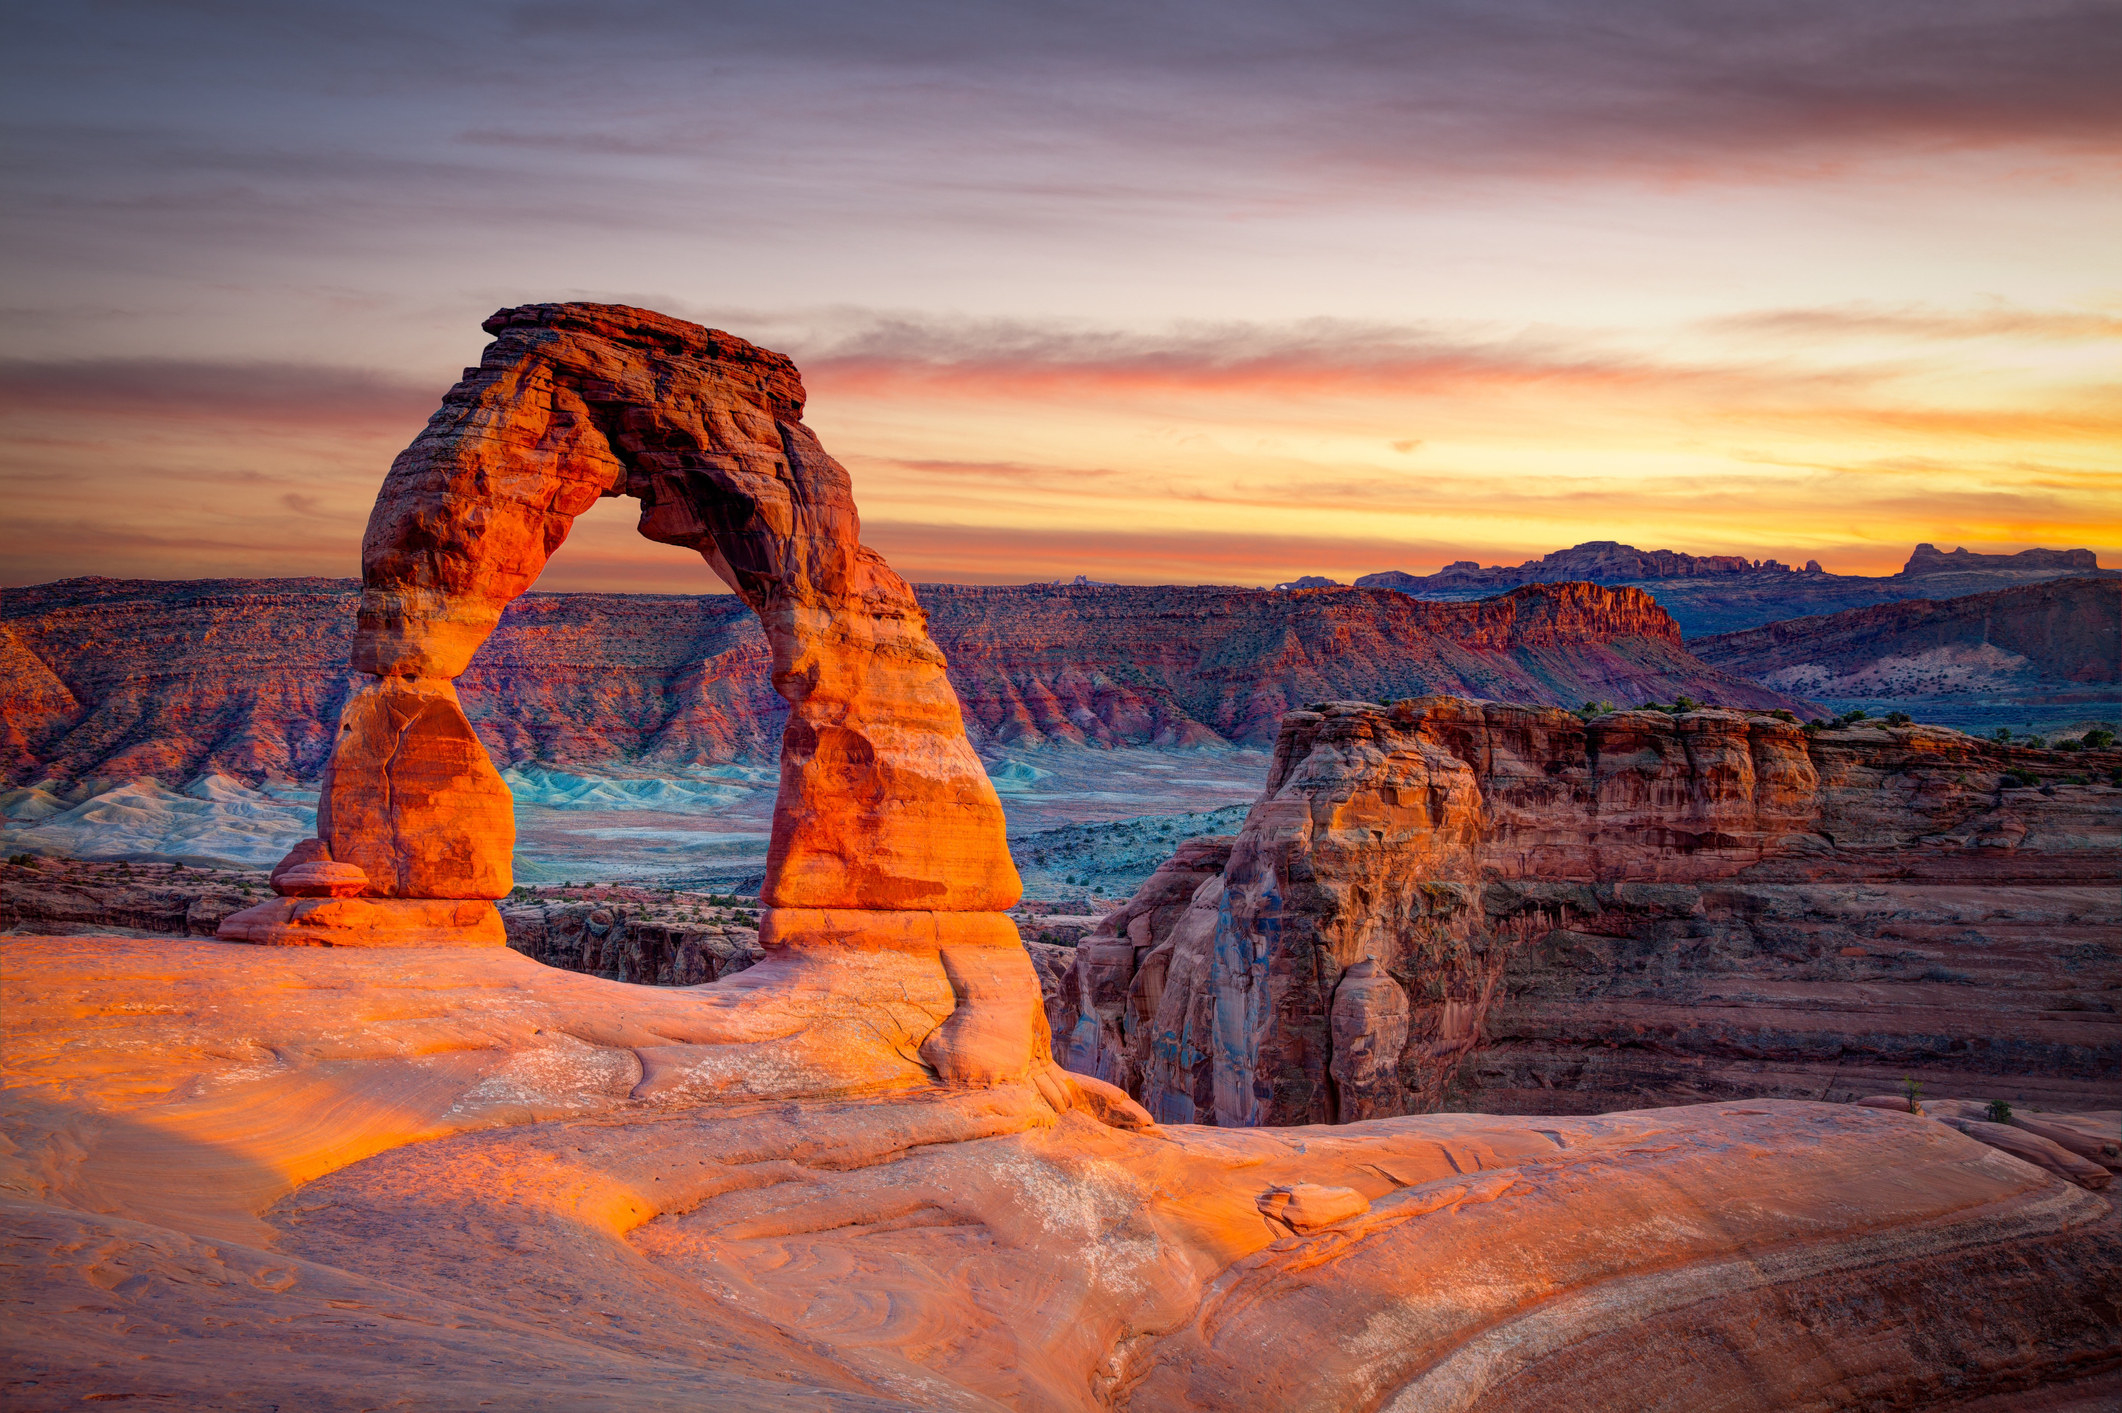 An arch at Arches National Park sits in the foreground with cliffs and a sunset behind it